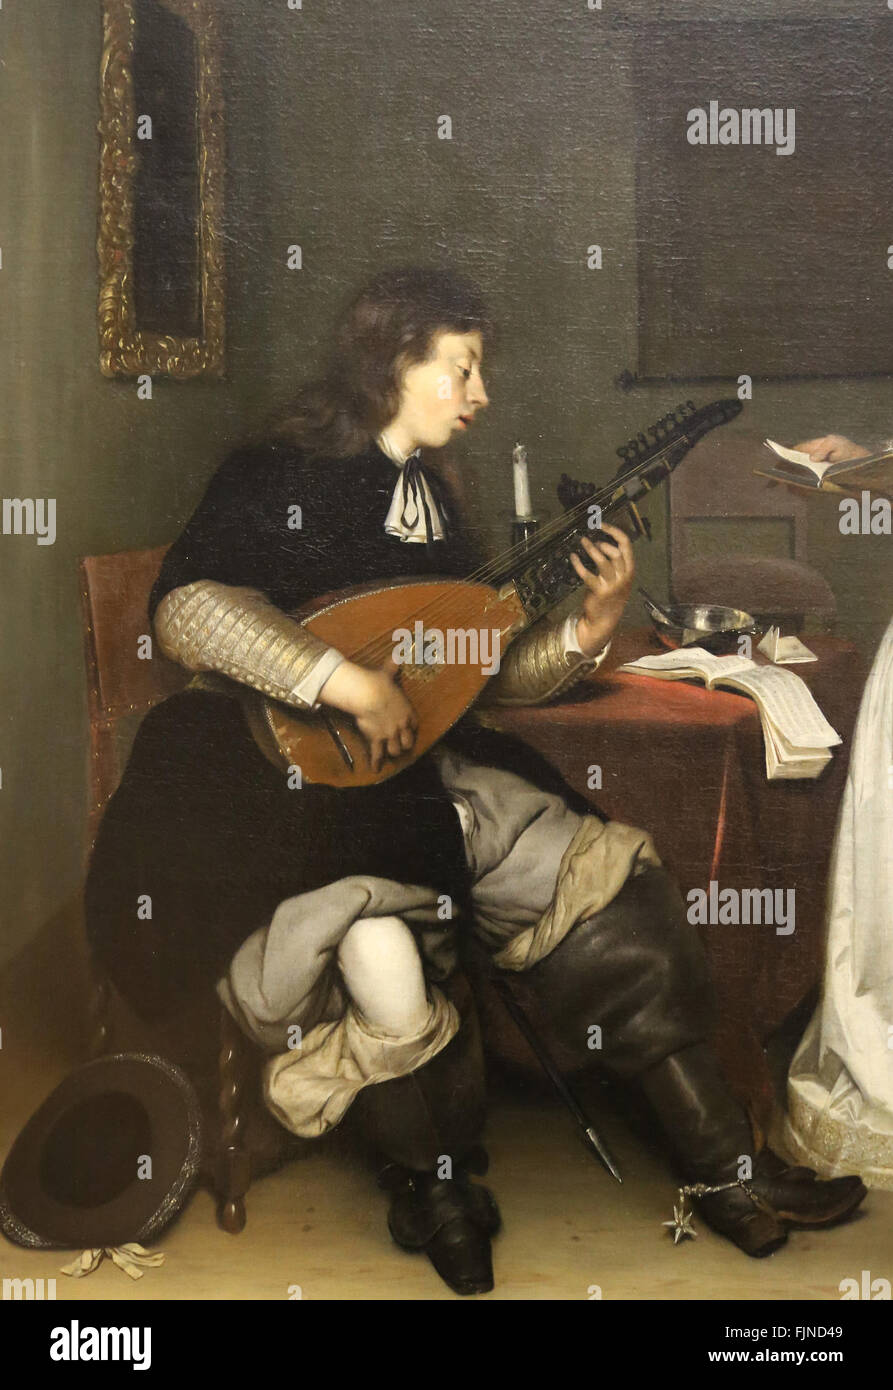 Gerard ter Borch (1617-1681). Dutch genre painter. Dutch Golden Age. the duet. Singer and Theorbo lute player, 1669. - Stock Image